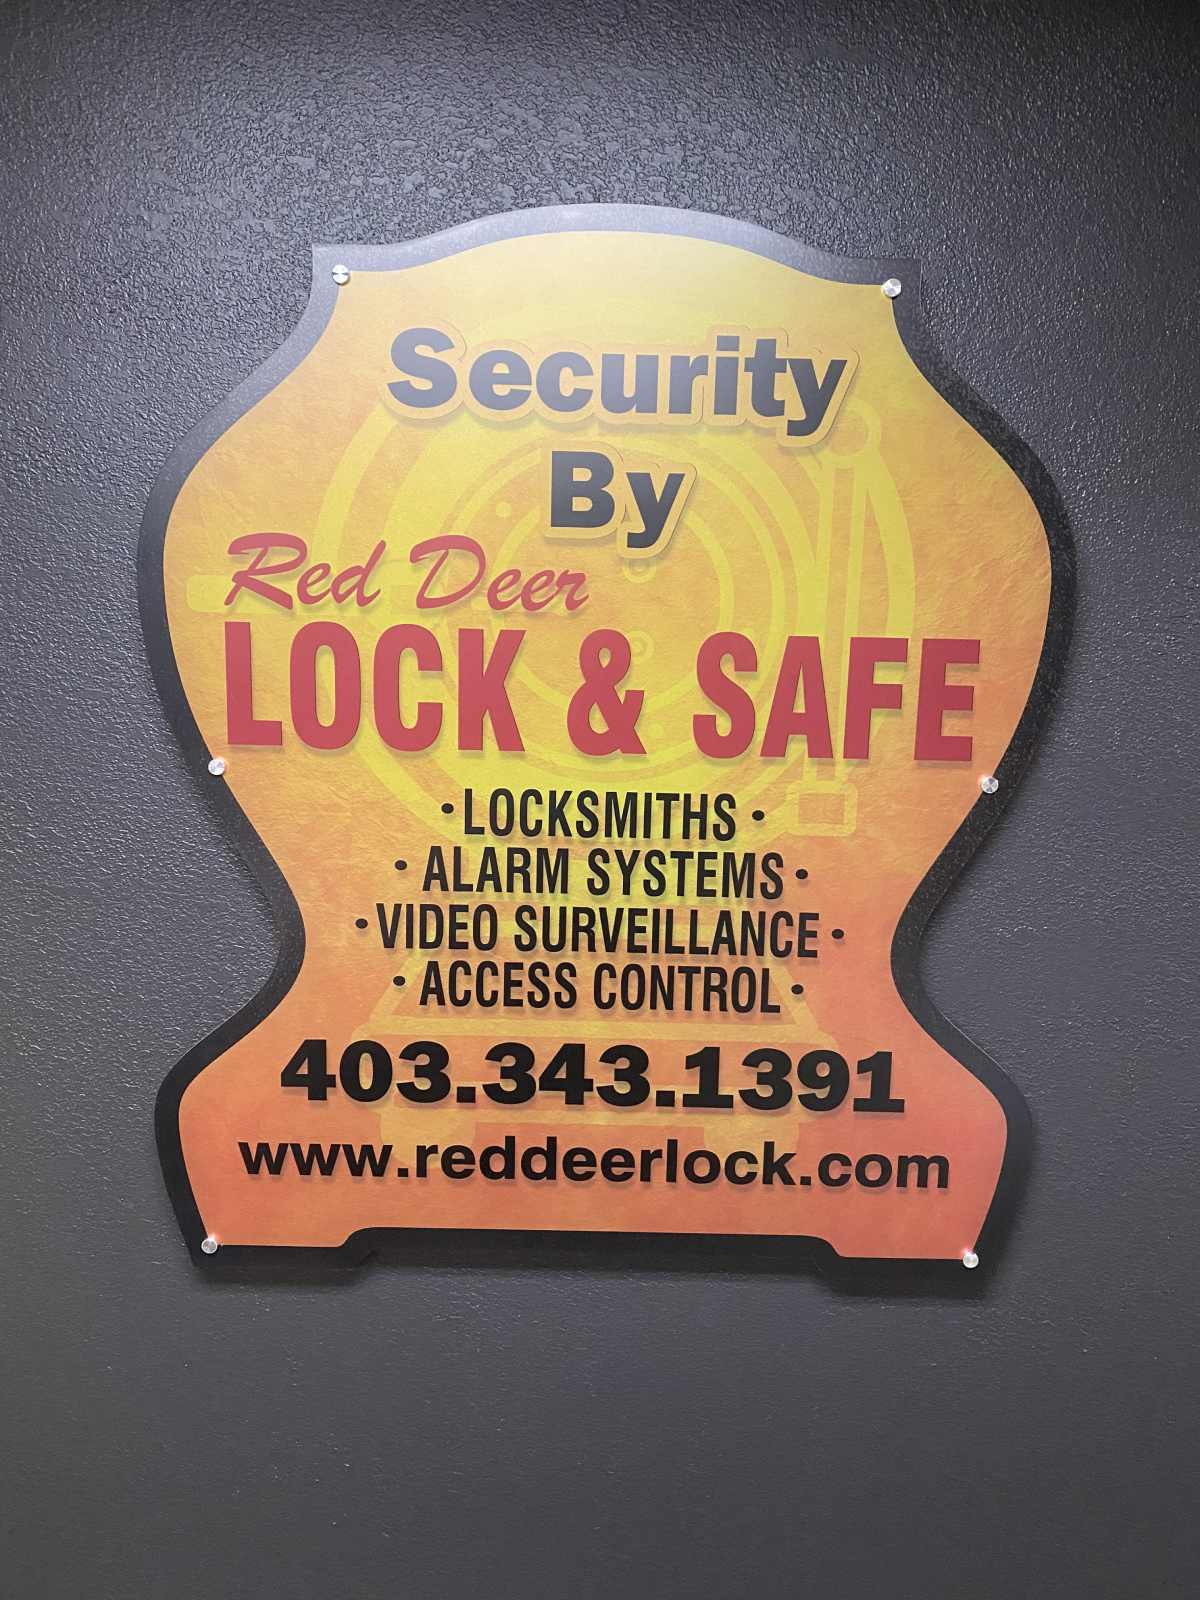 security by Red Deer Lock & Safe Ltd